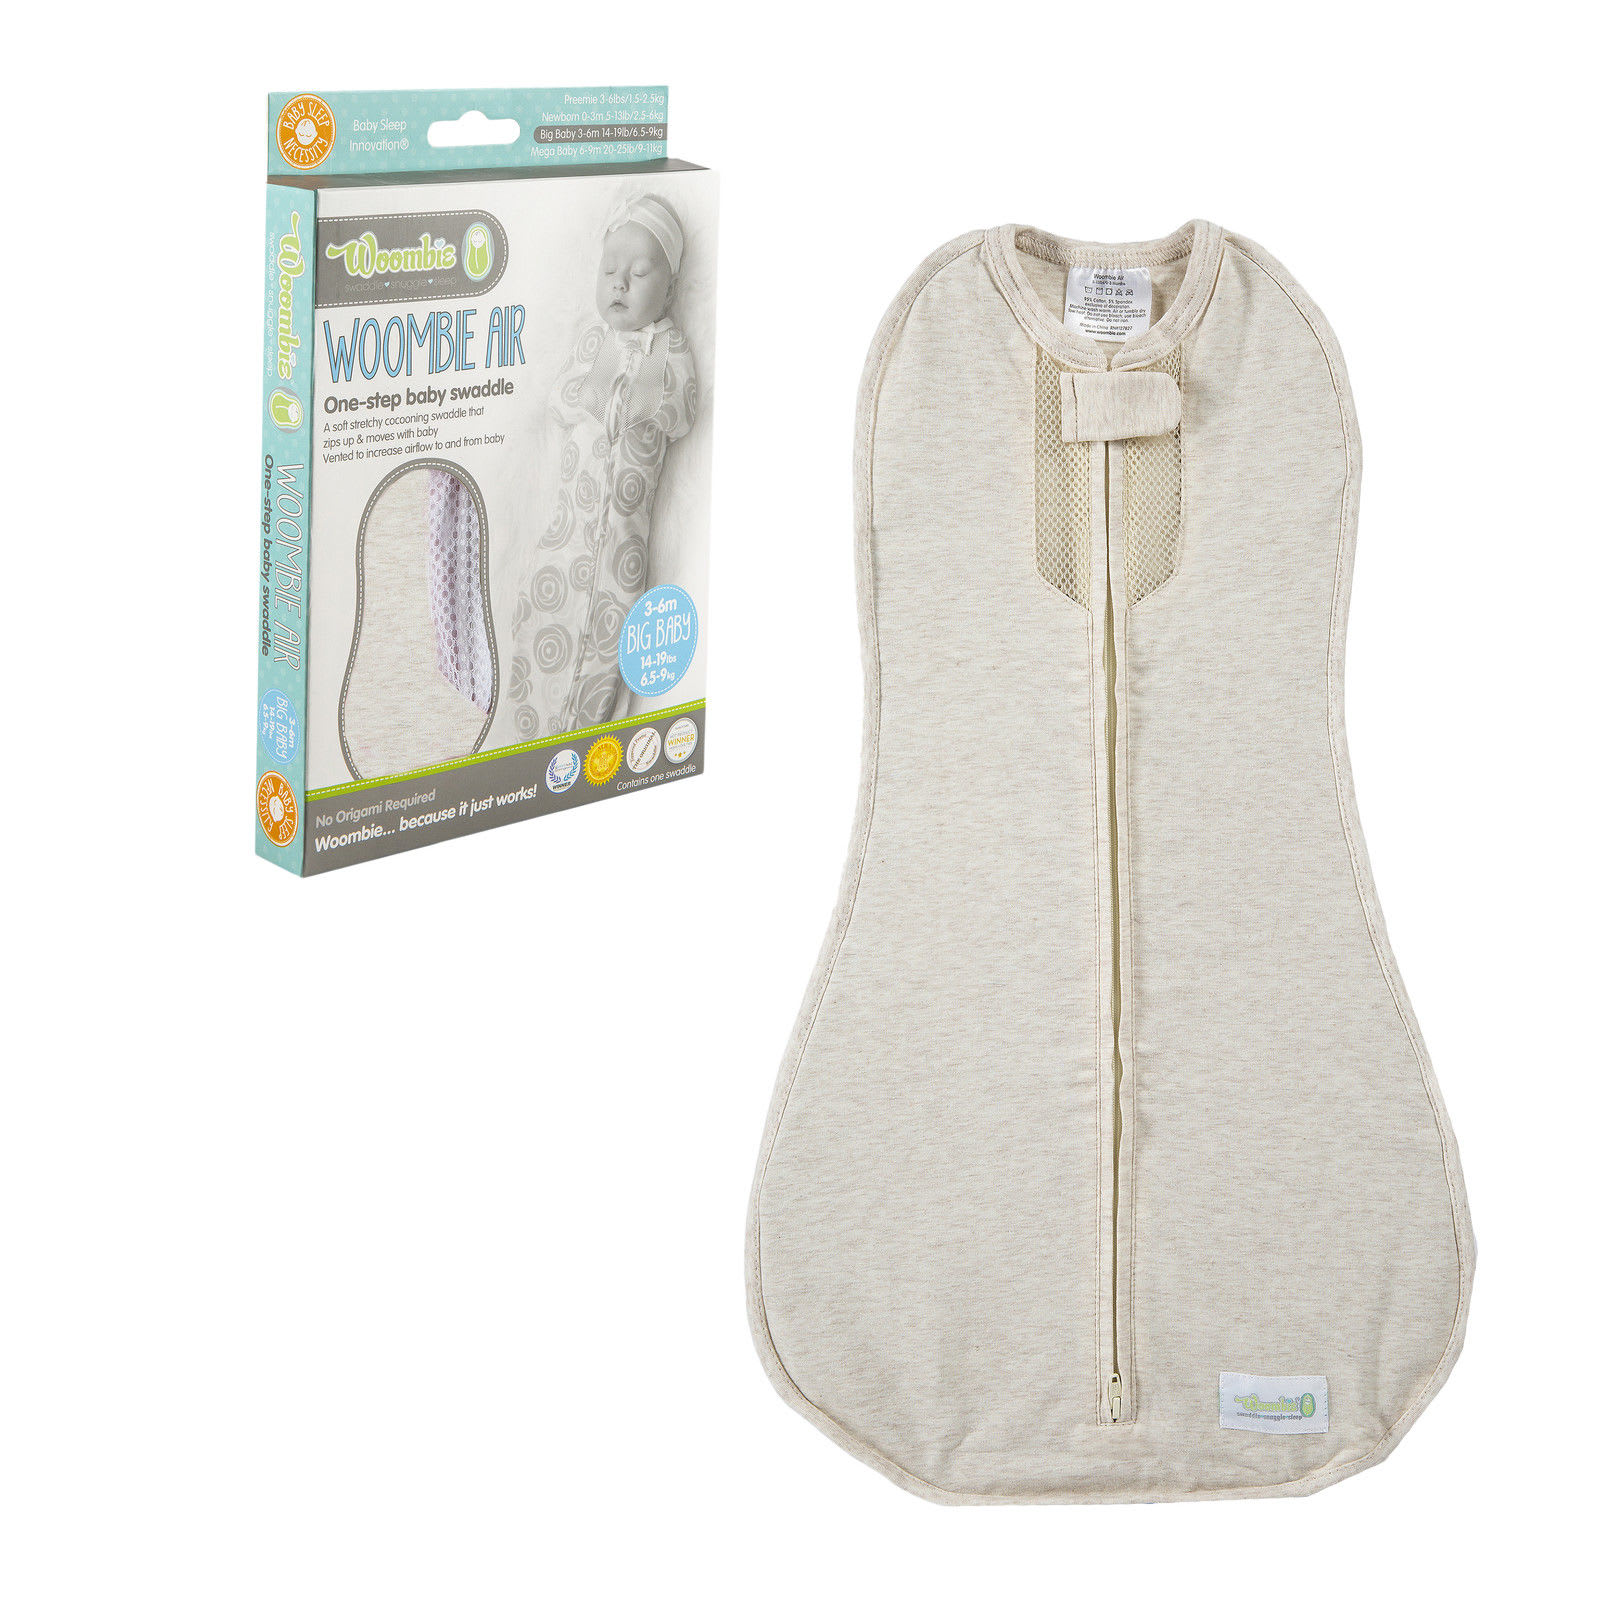 Stress-Relieving Products for New Parents: Woombie Air Nursery swaddling blanket